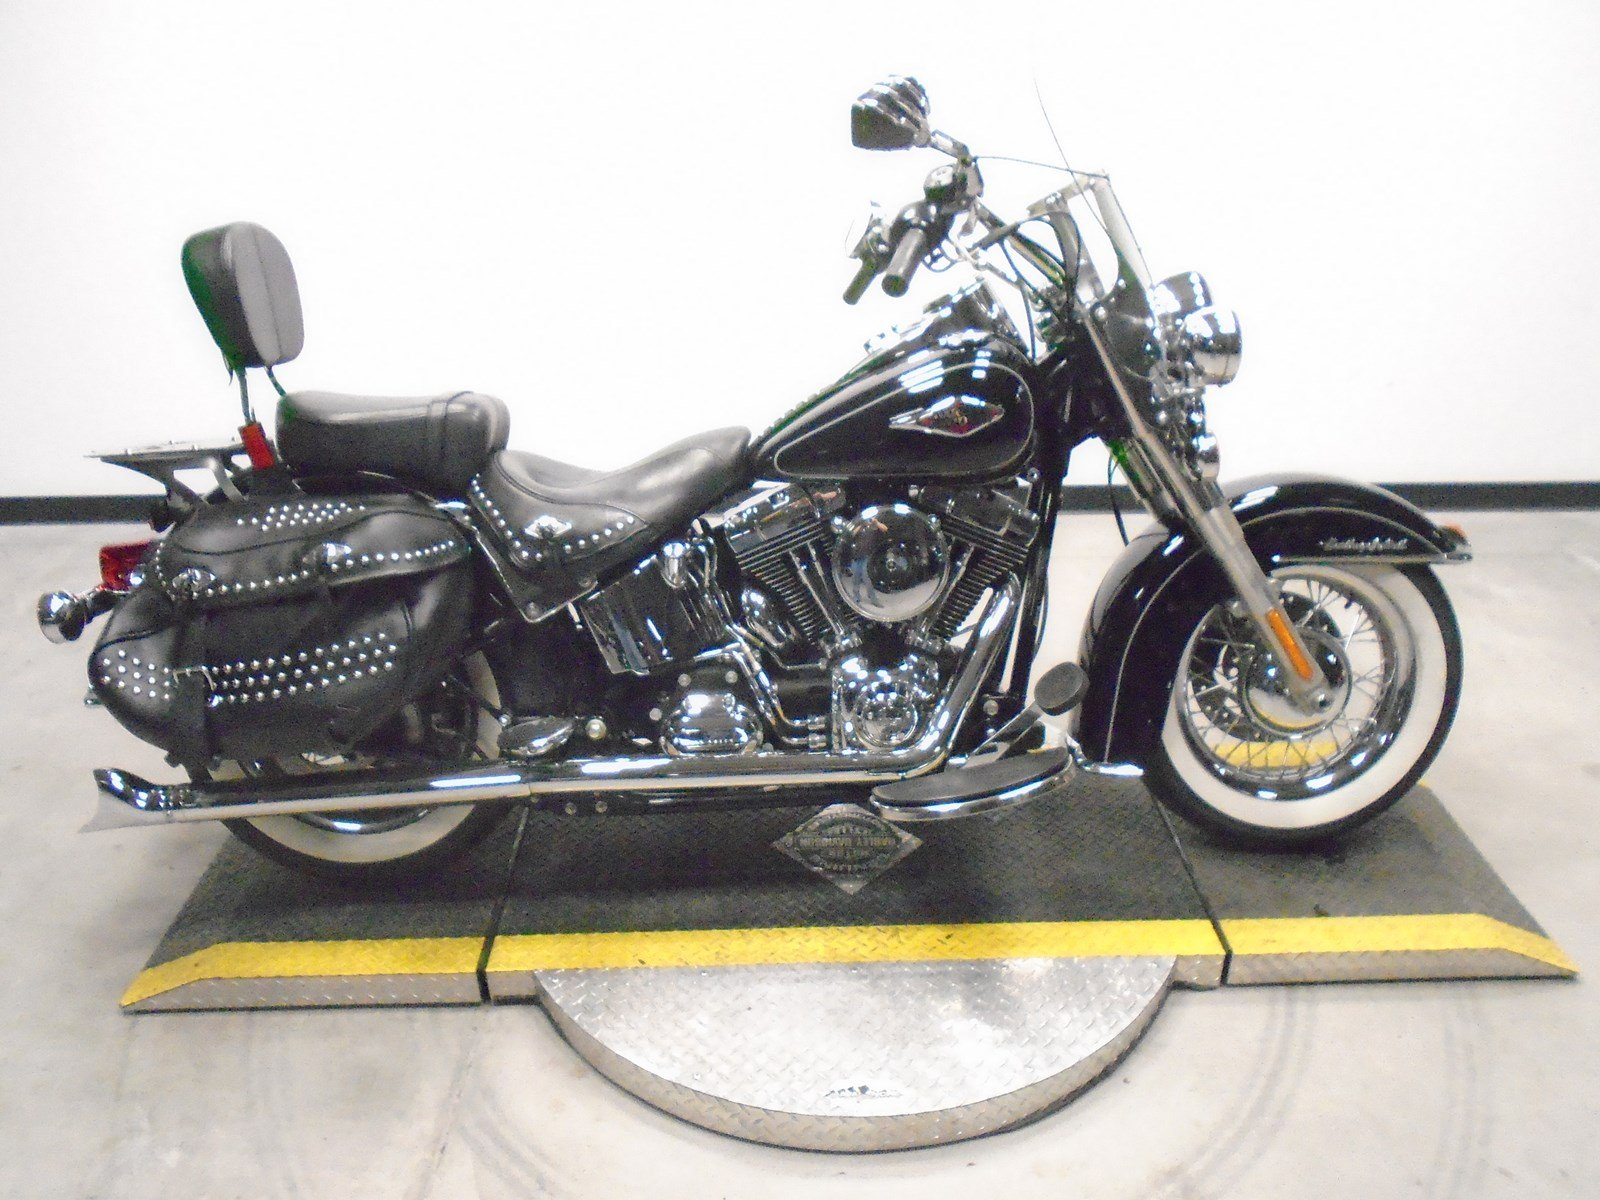 Pre-Owned 2013 Harley-Davidson Softail Heritage Classic FLSTC